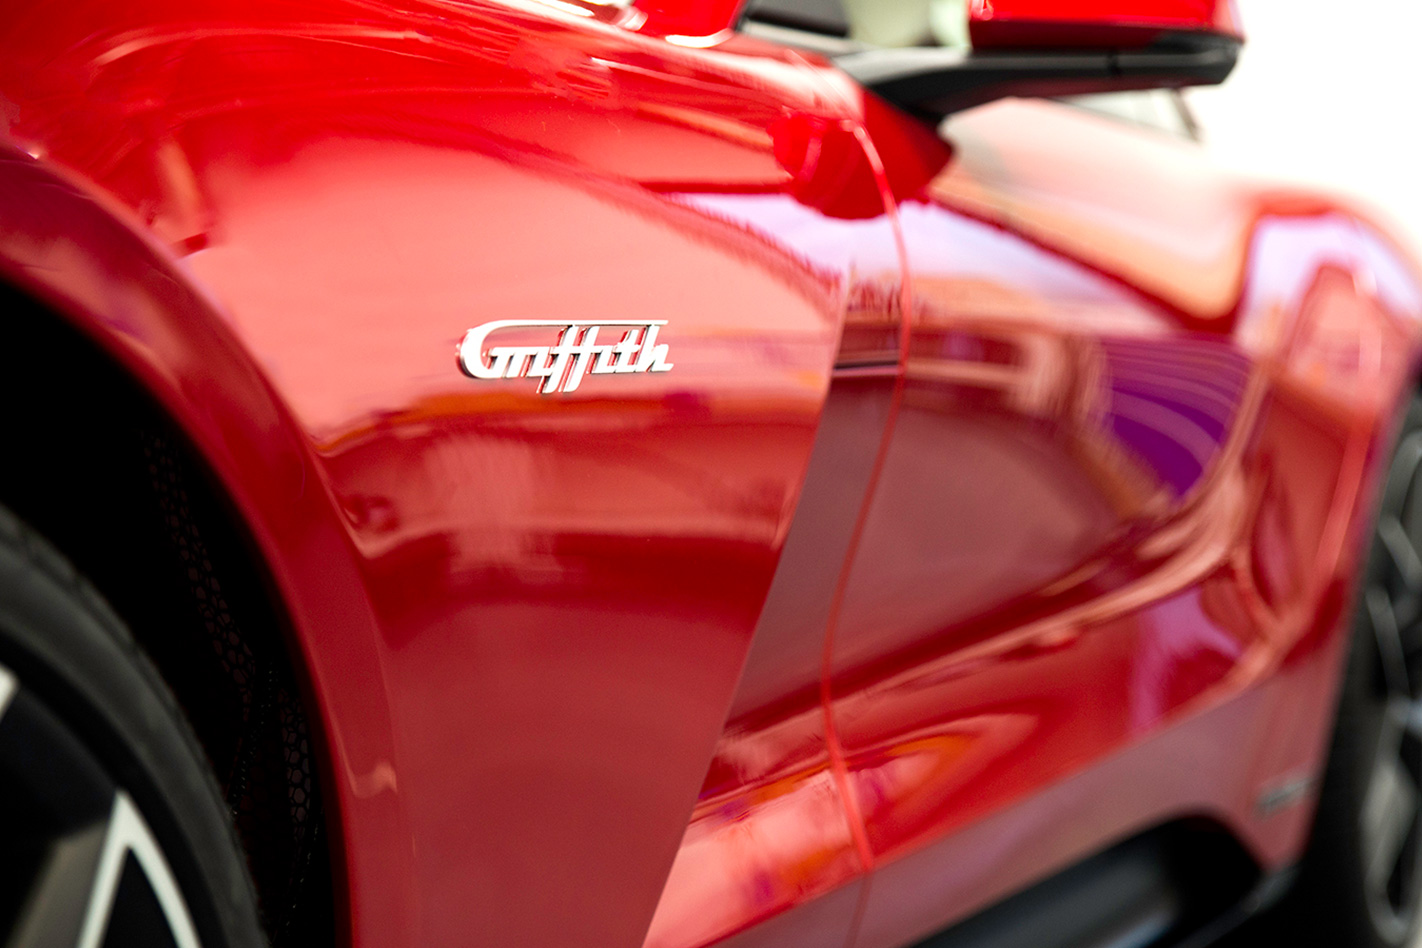 TVR Griffith badge